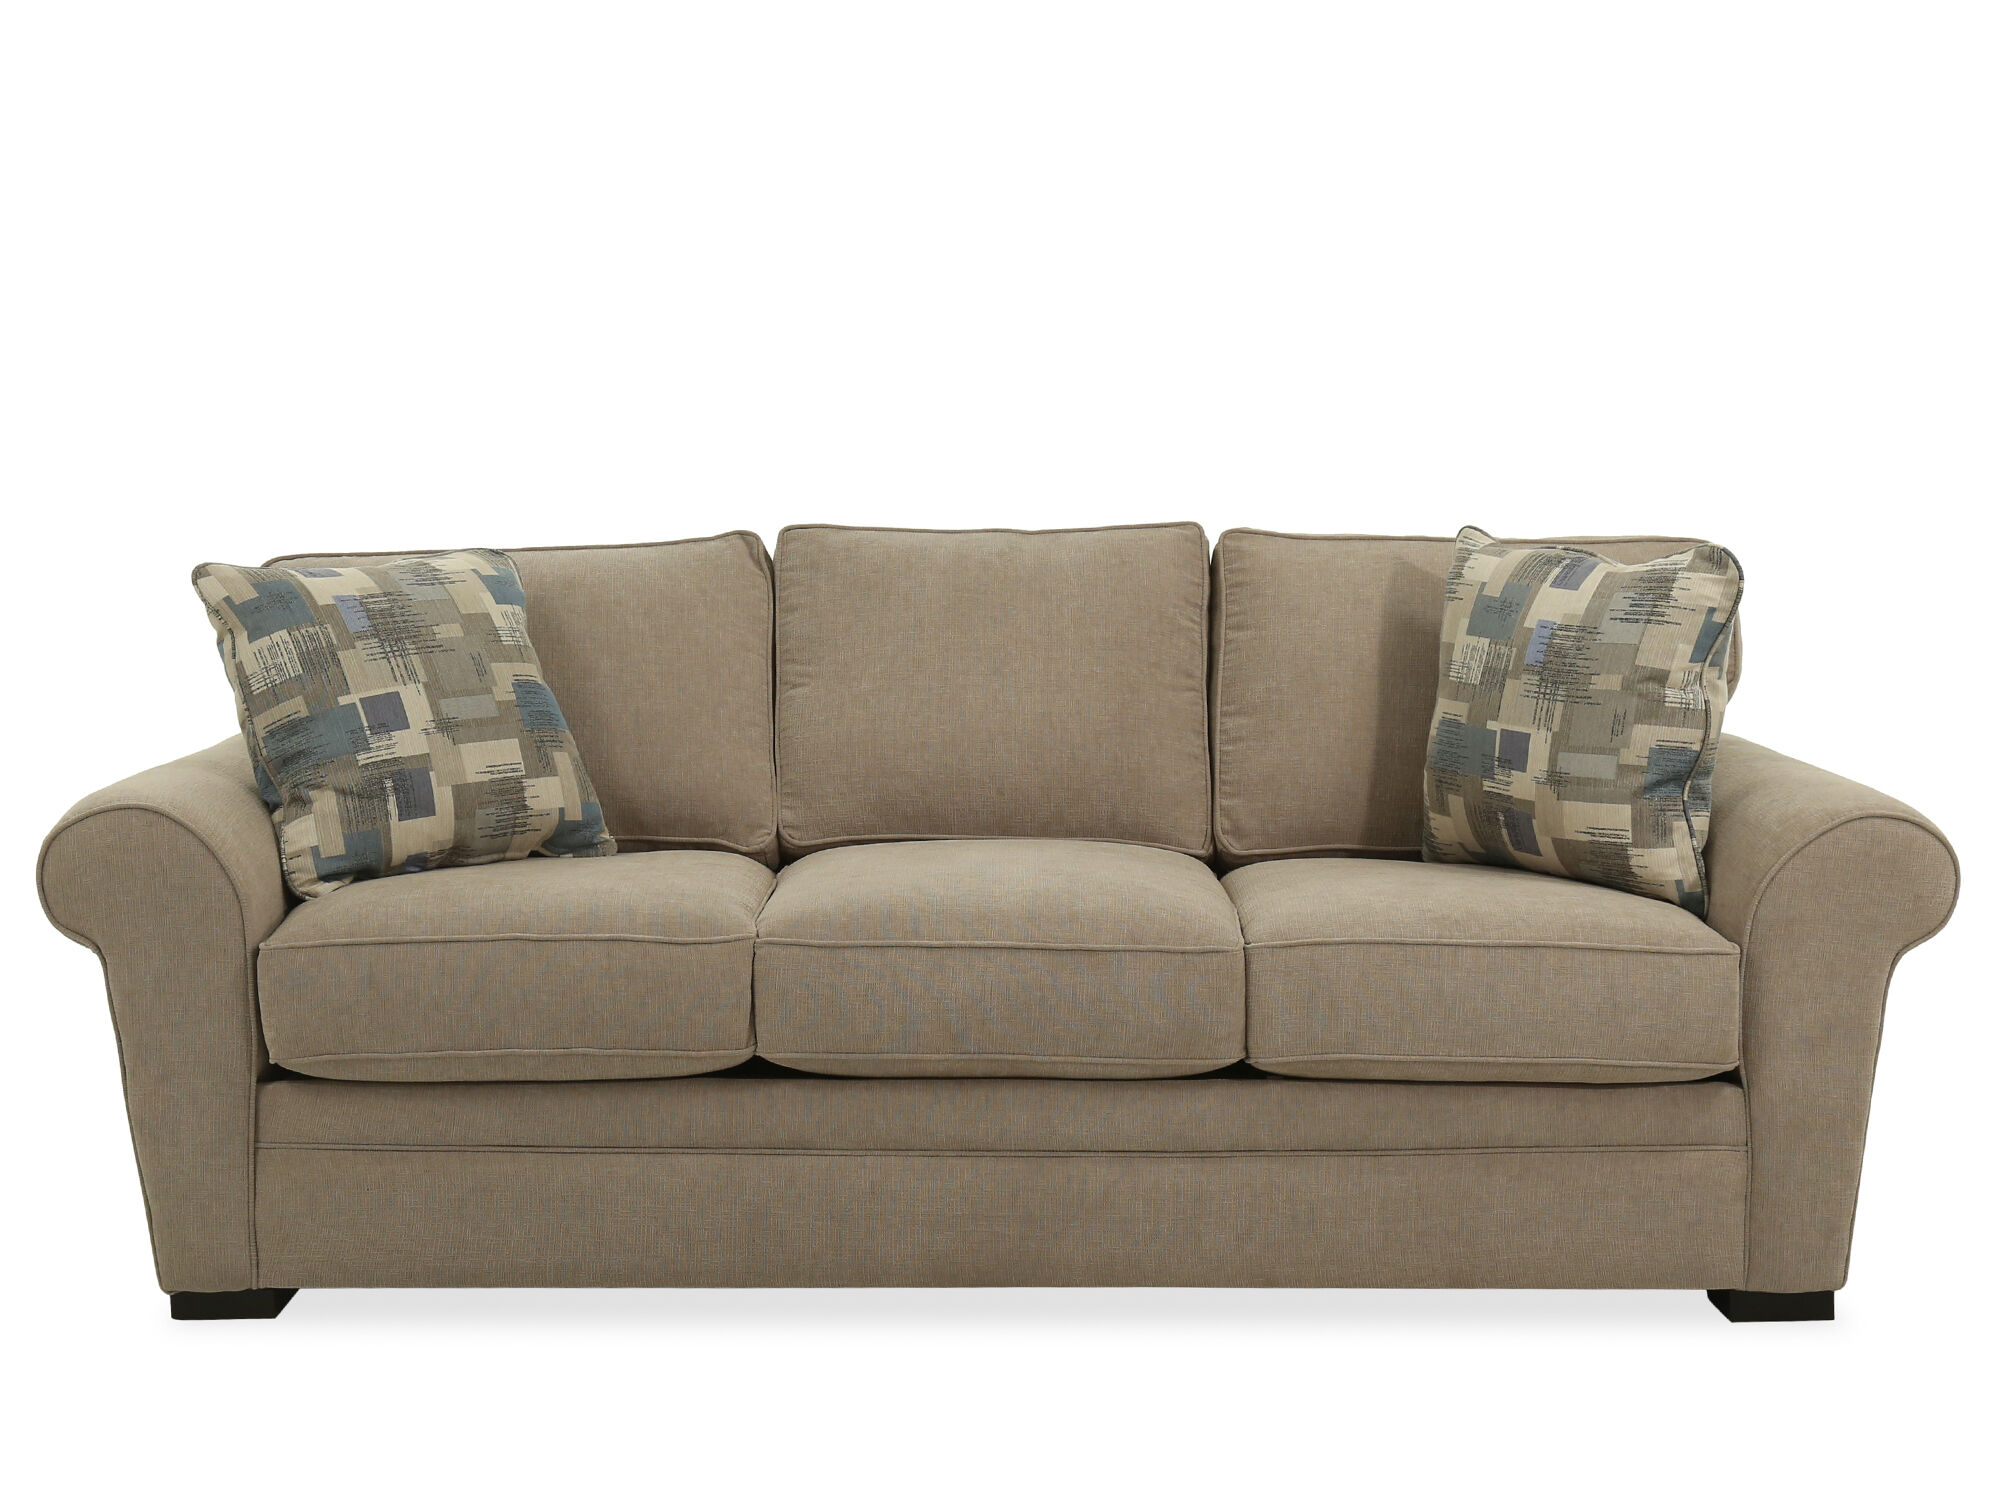 Casual Queen Sleeper Sofa in Light Brown   Mathis Brothers ...